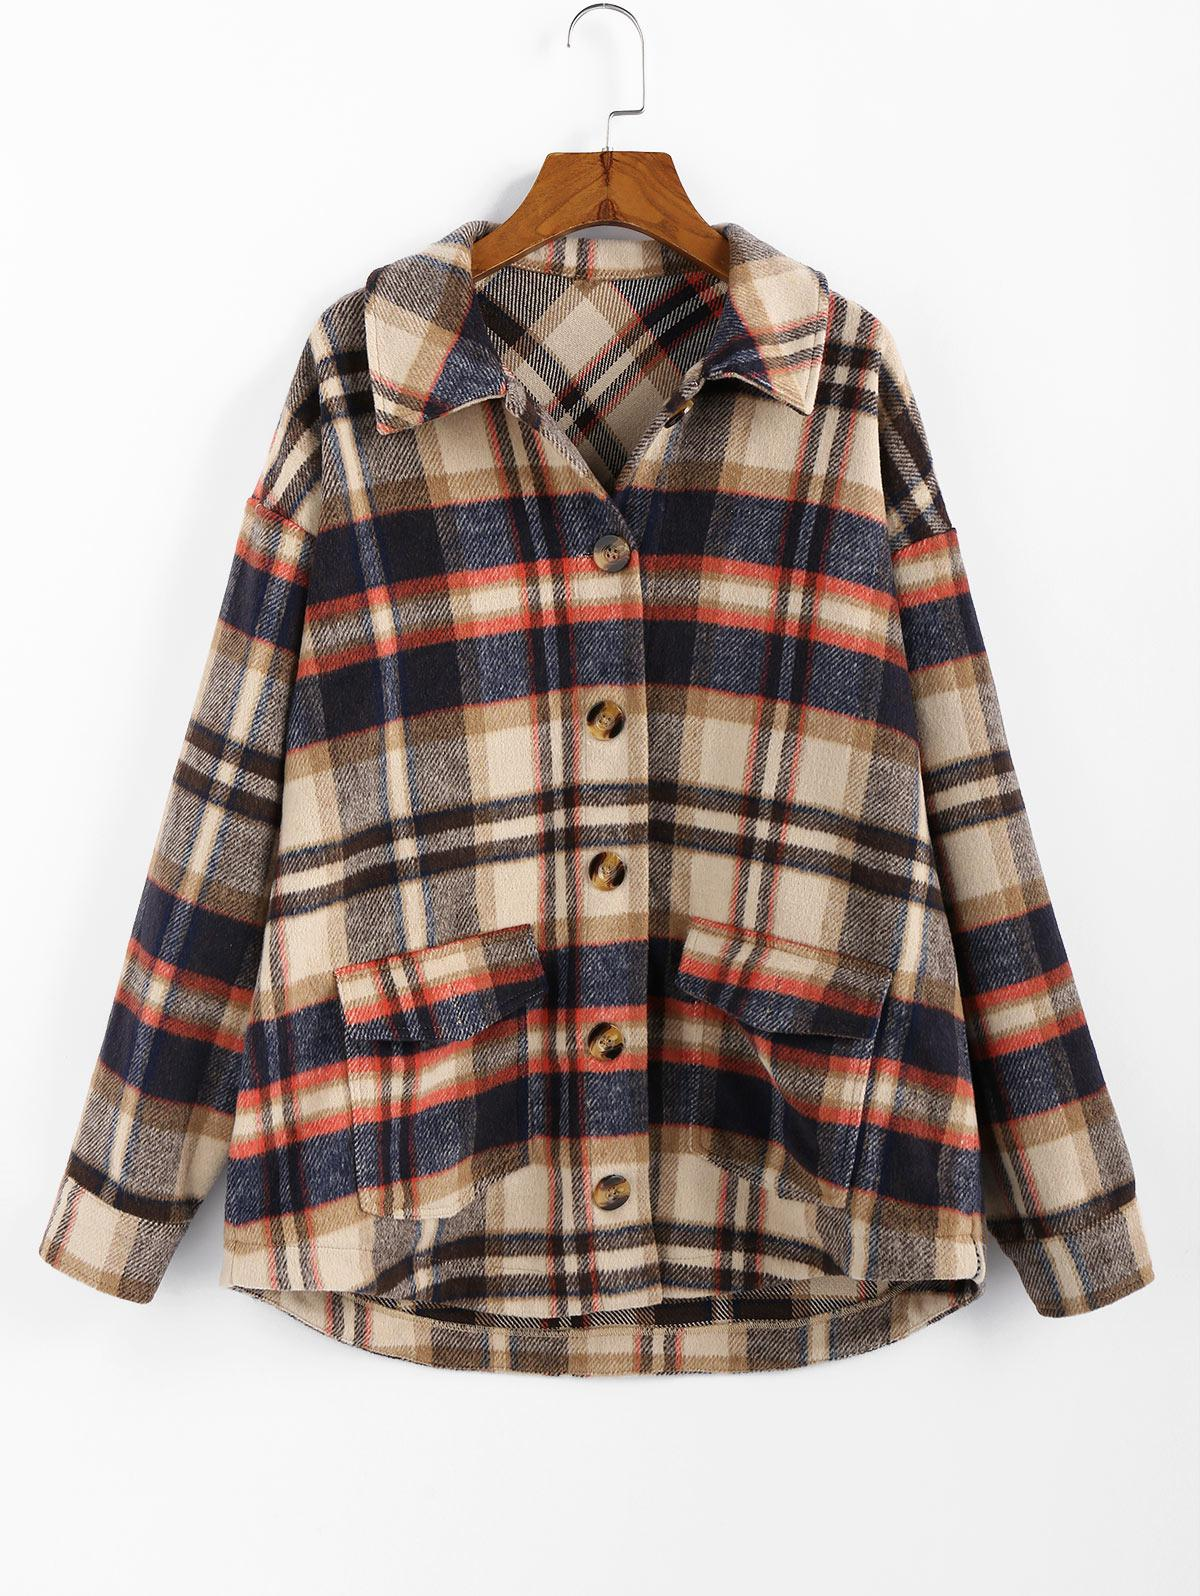 ZAFUL Plaid High Low Single Breasted Wool Coat